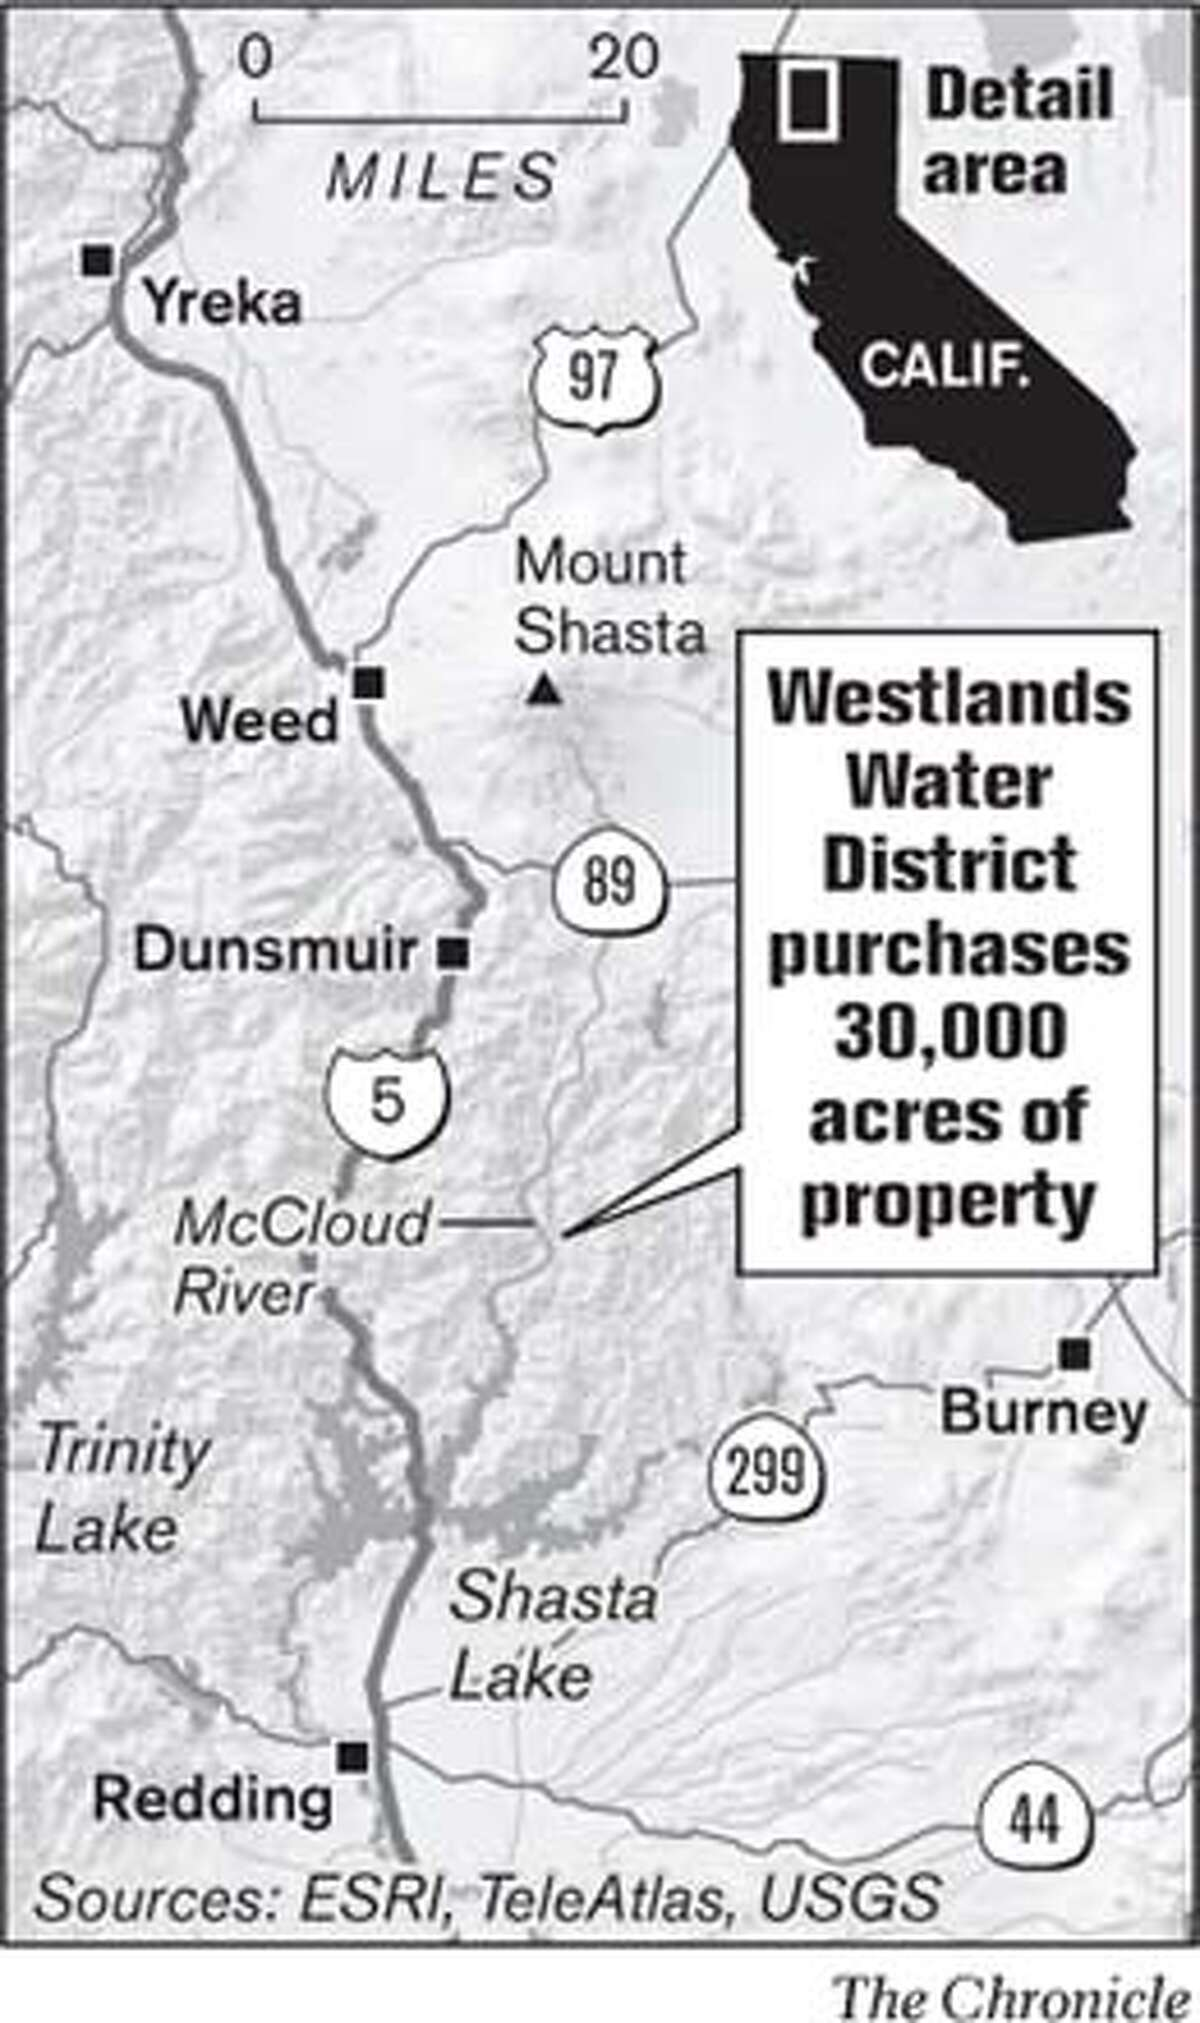 Westlands Water District purchases 30,000 acres of property. Chronicle Graphic